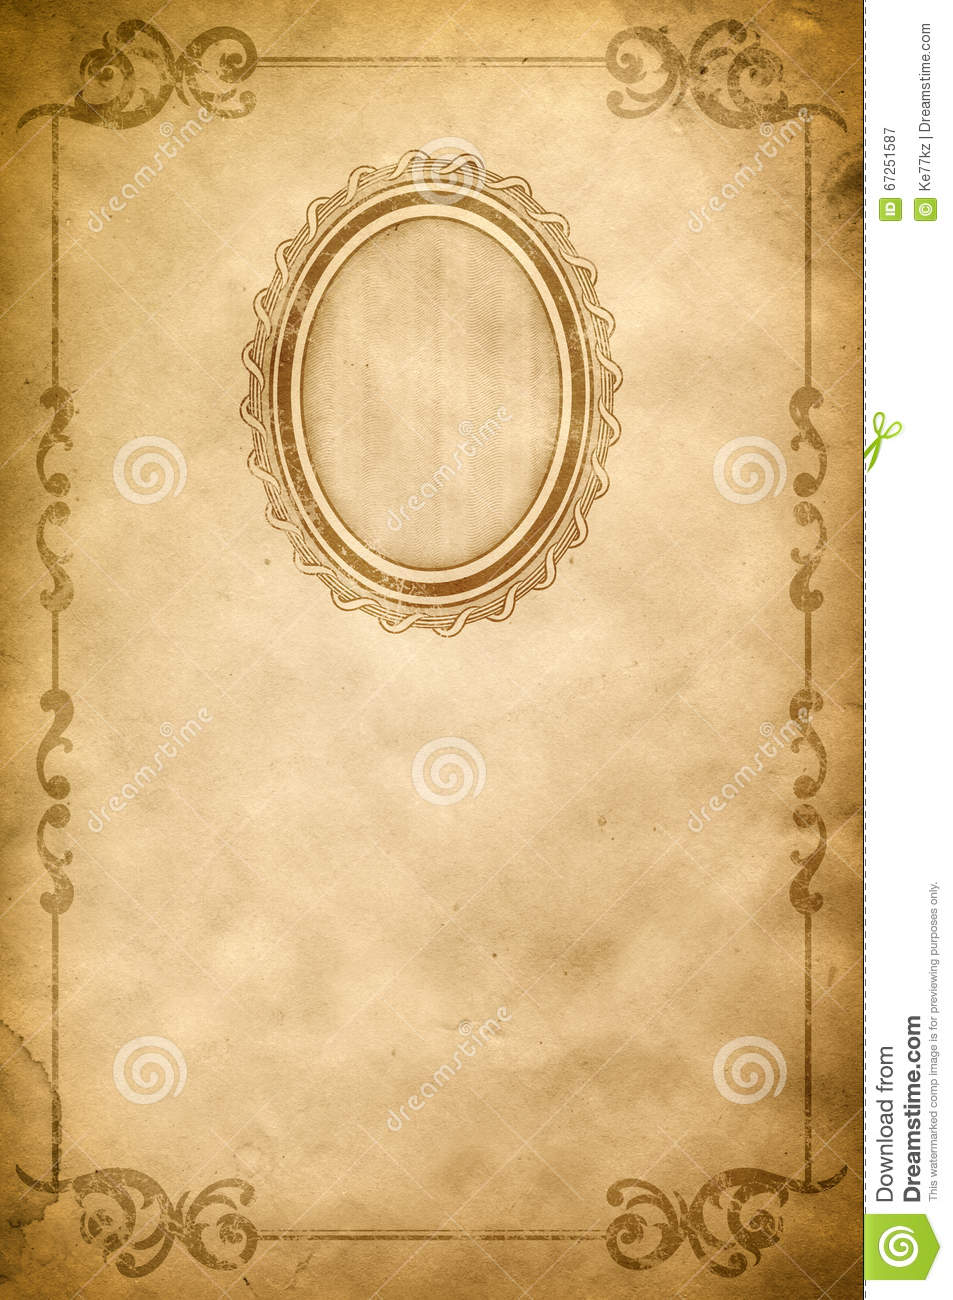 Old Paper Background With Old-fashioned Frame And Border ...